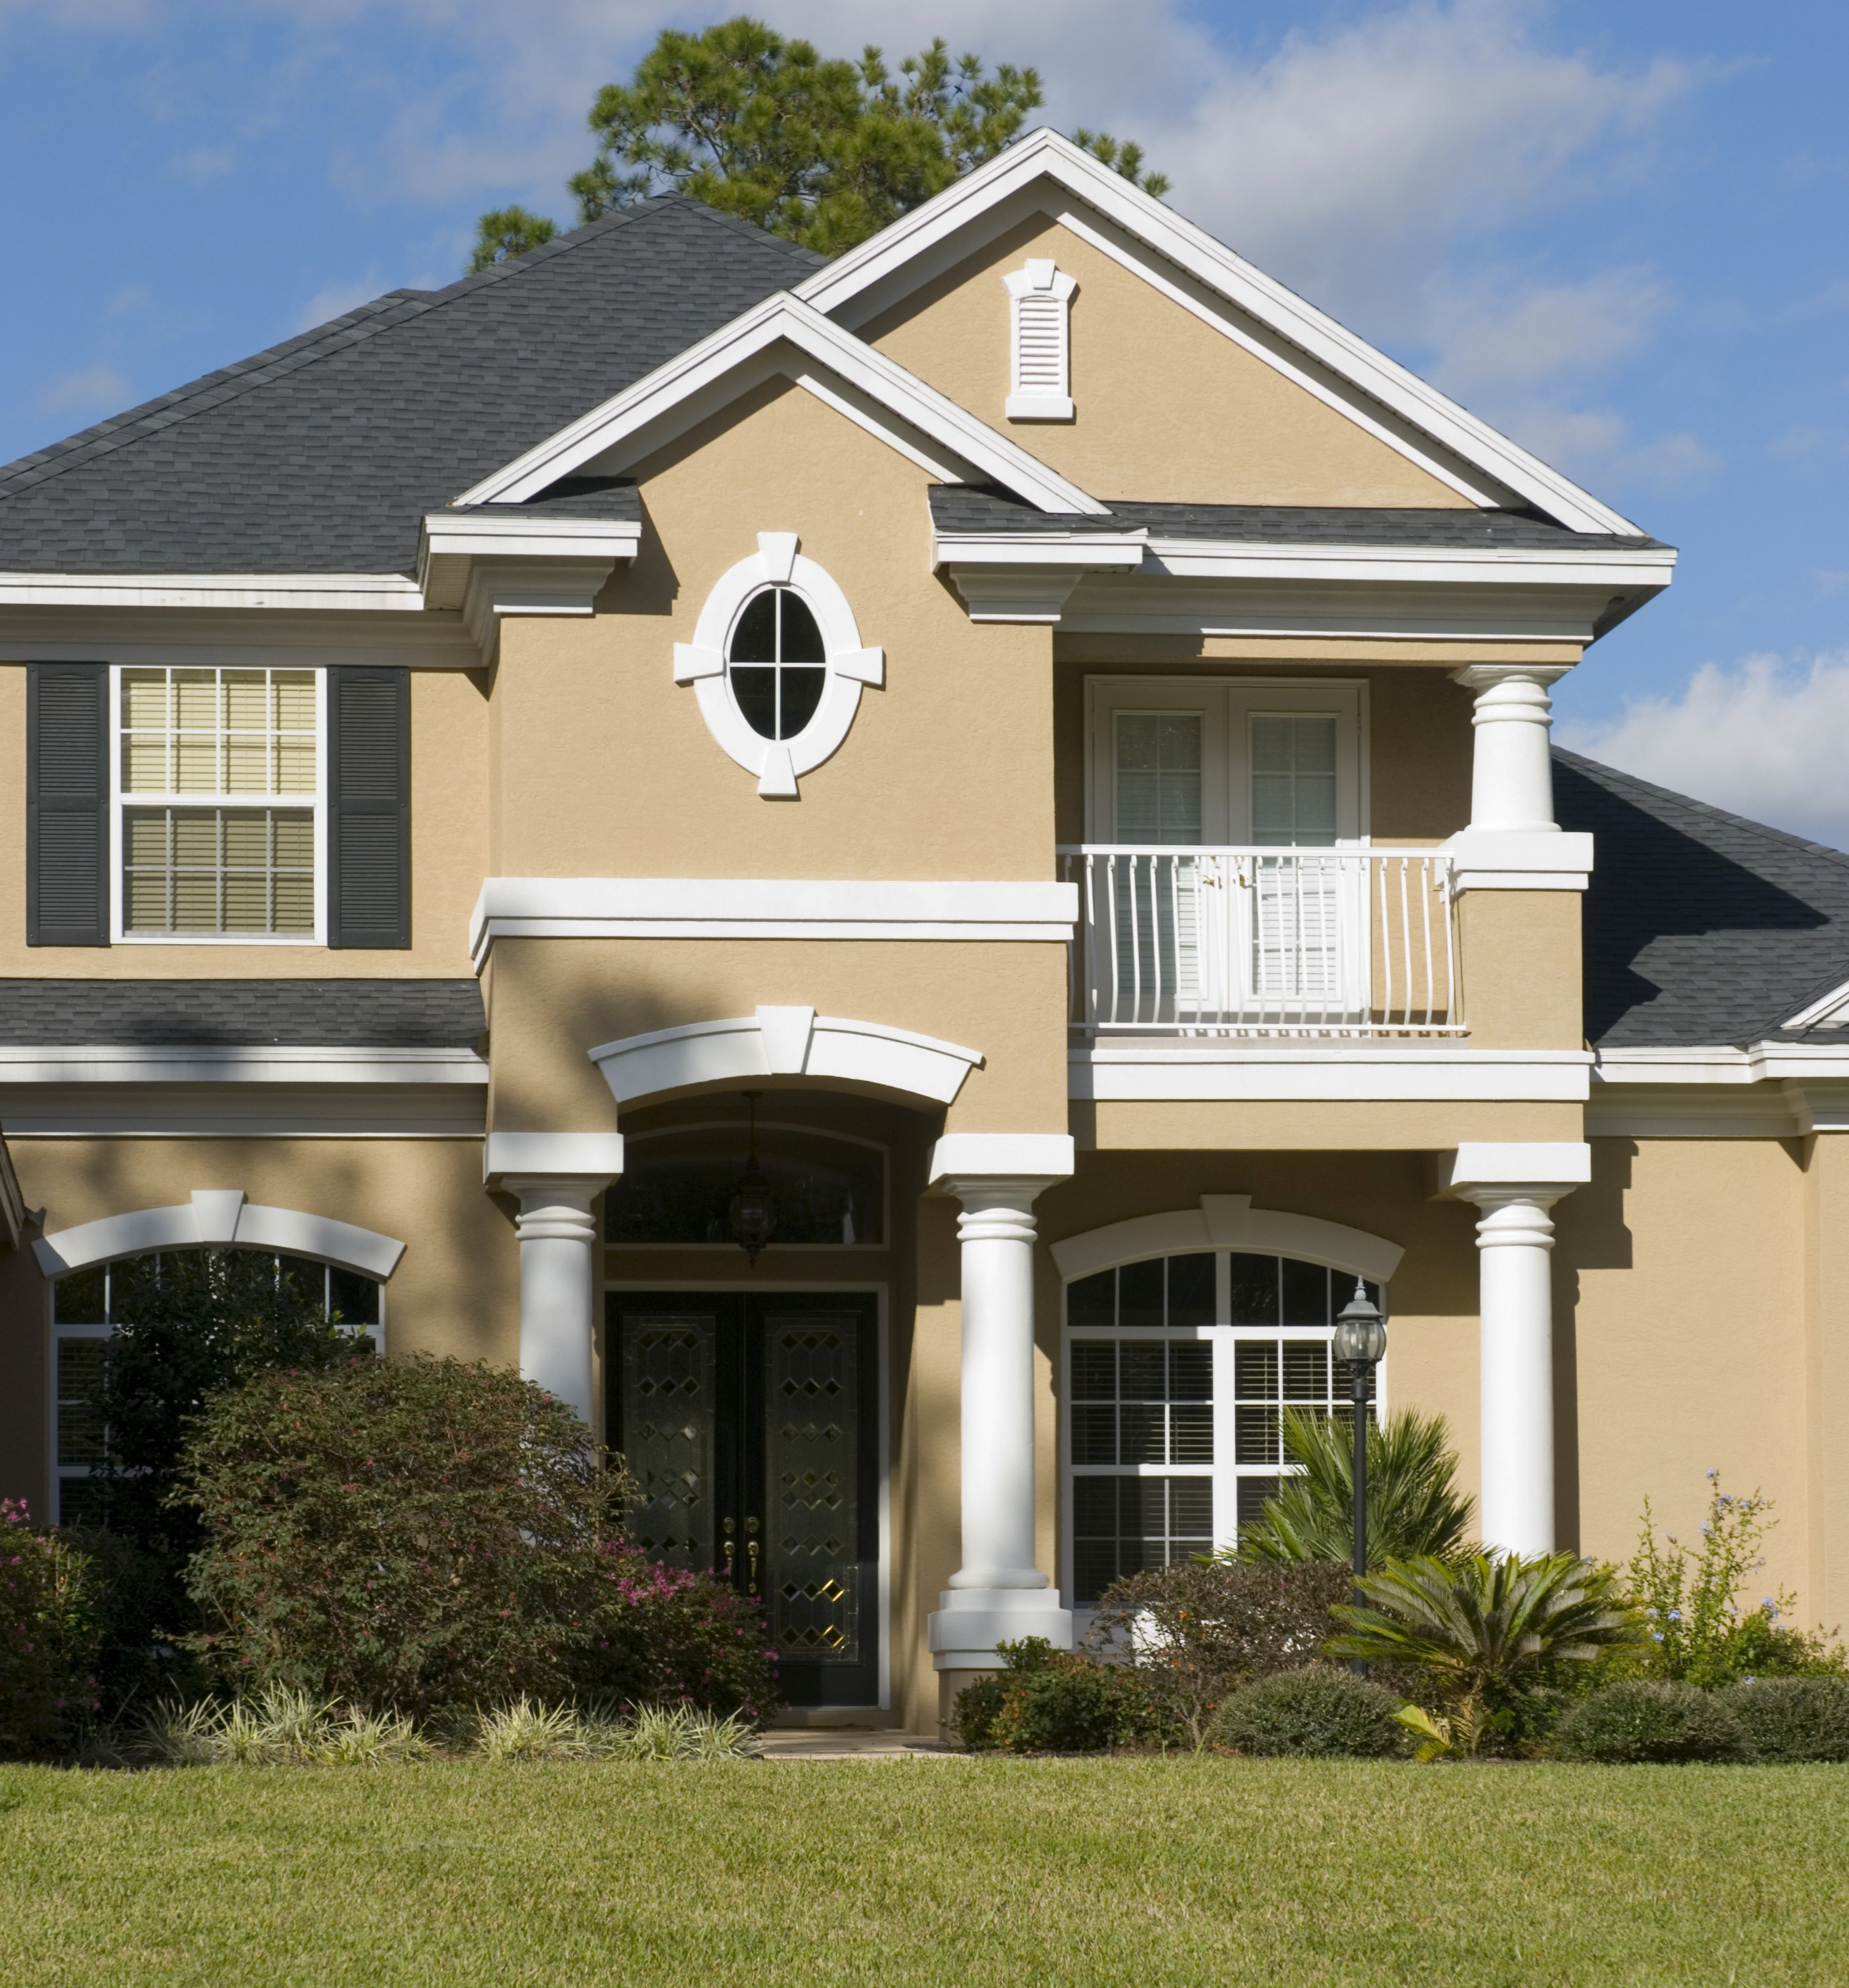 Painting The Exterior Of Your Home olympus digital camera Woodinville Painters Free Estimate